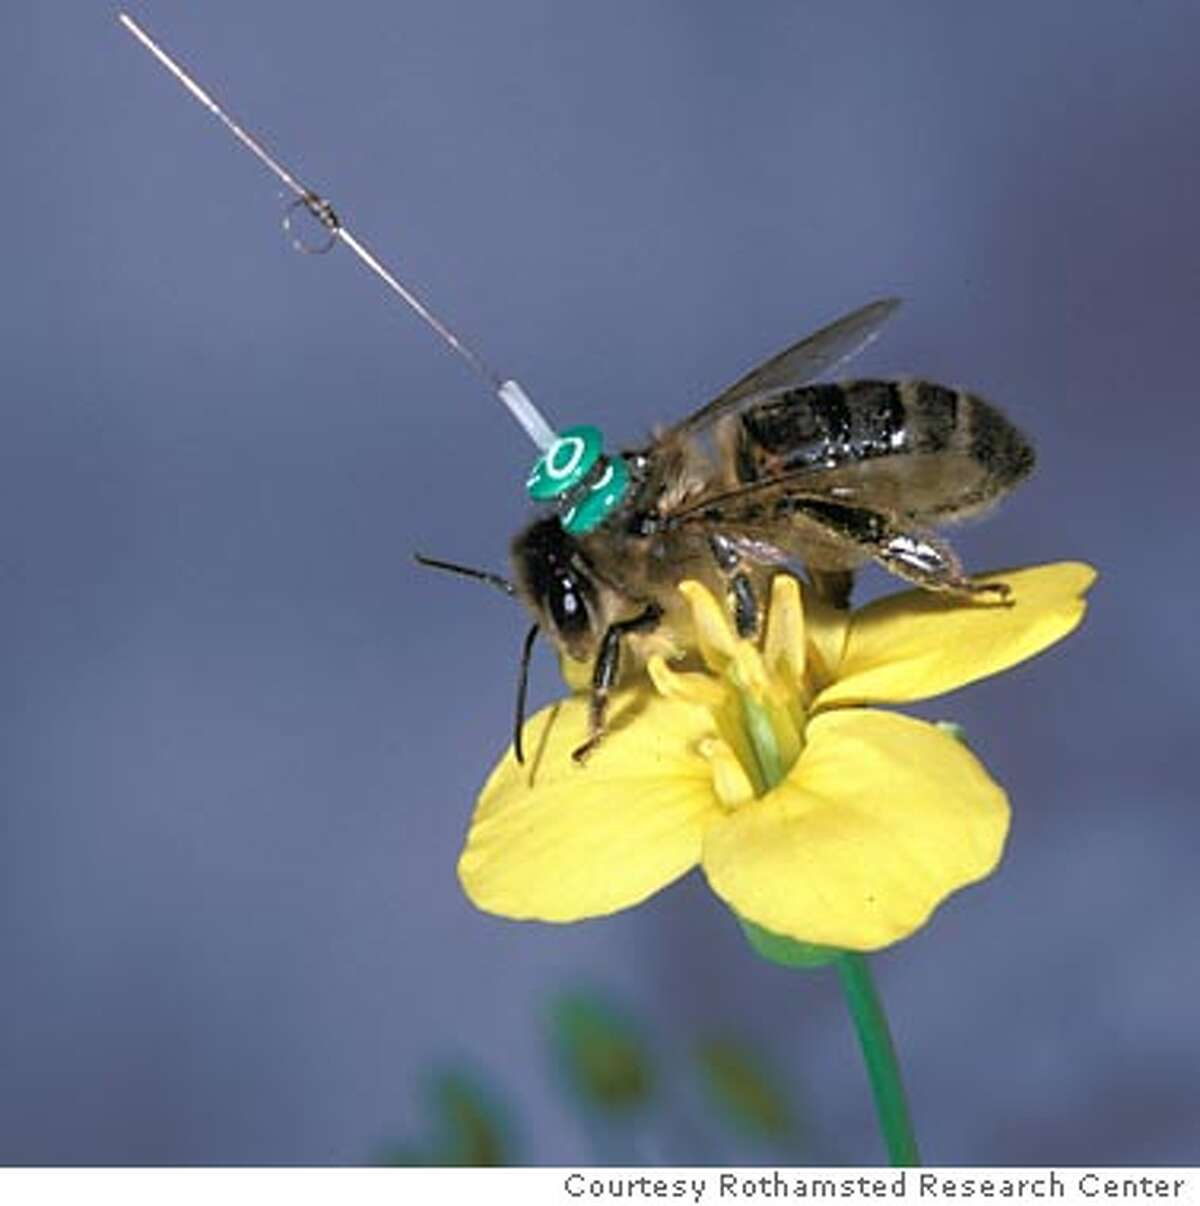 """Joseph R. Riley of Britain's Rothamsted Research Center in rural Hertfordshire, together with Uwe Greggers of Berlin's Free University and other colleagues are investigating the meaning of the honeybee """"waggle"""" dance by attaching tiny transponders to bees' backs. Photo special to the Chronicle"""